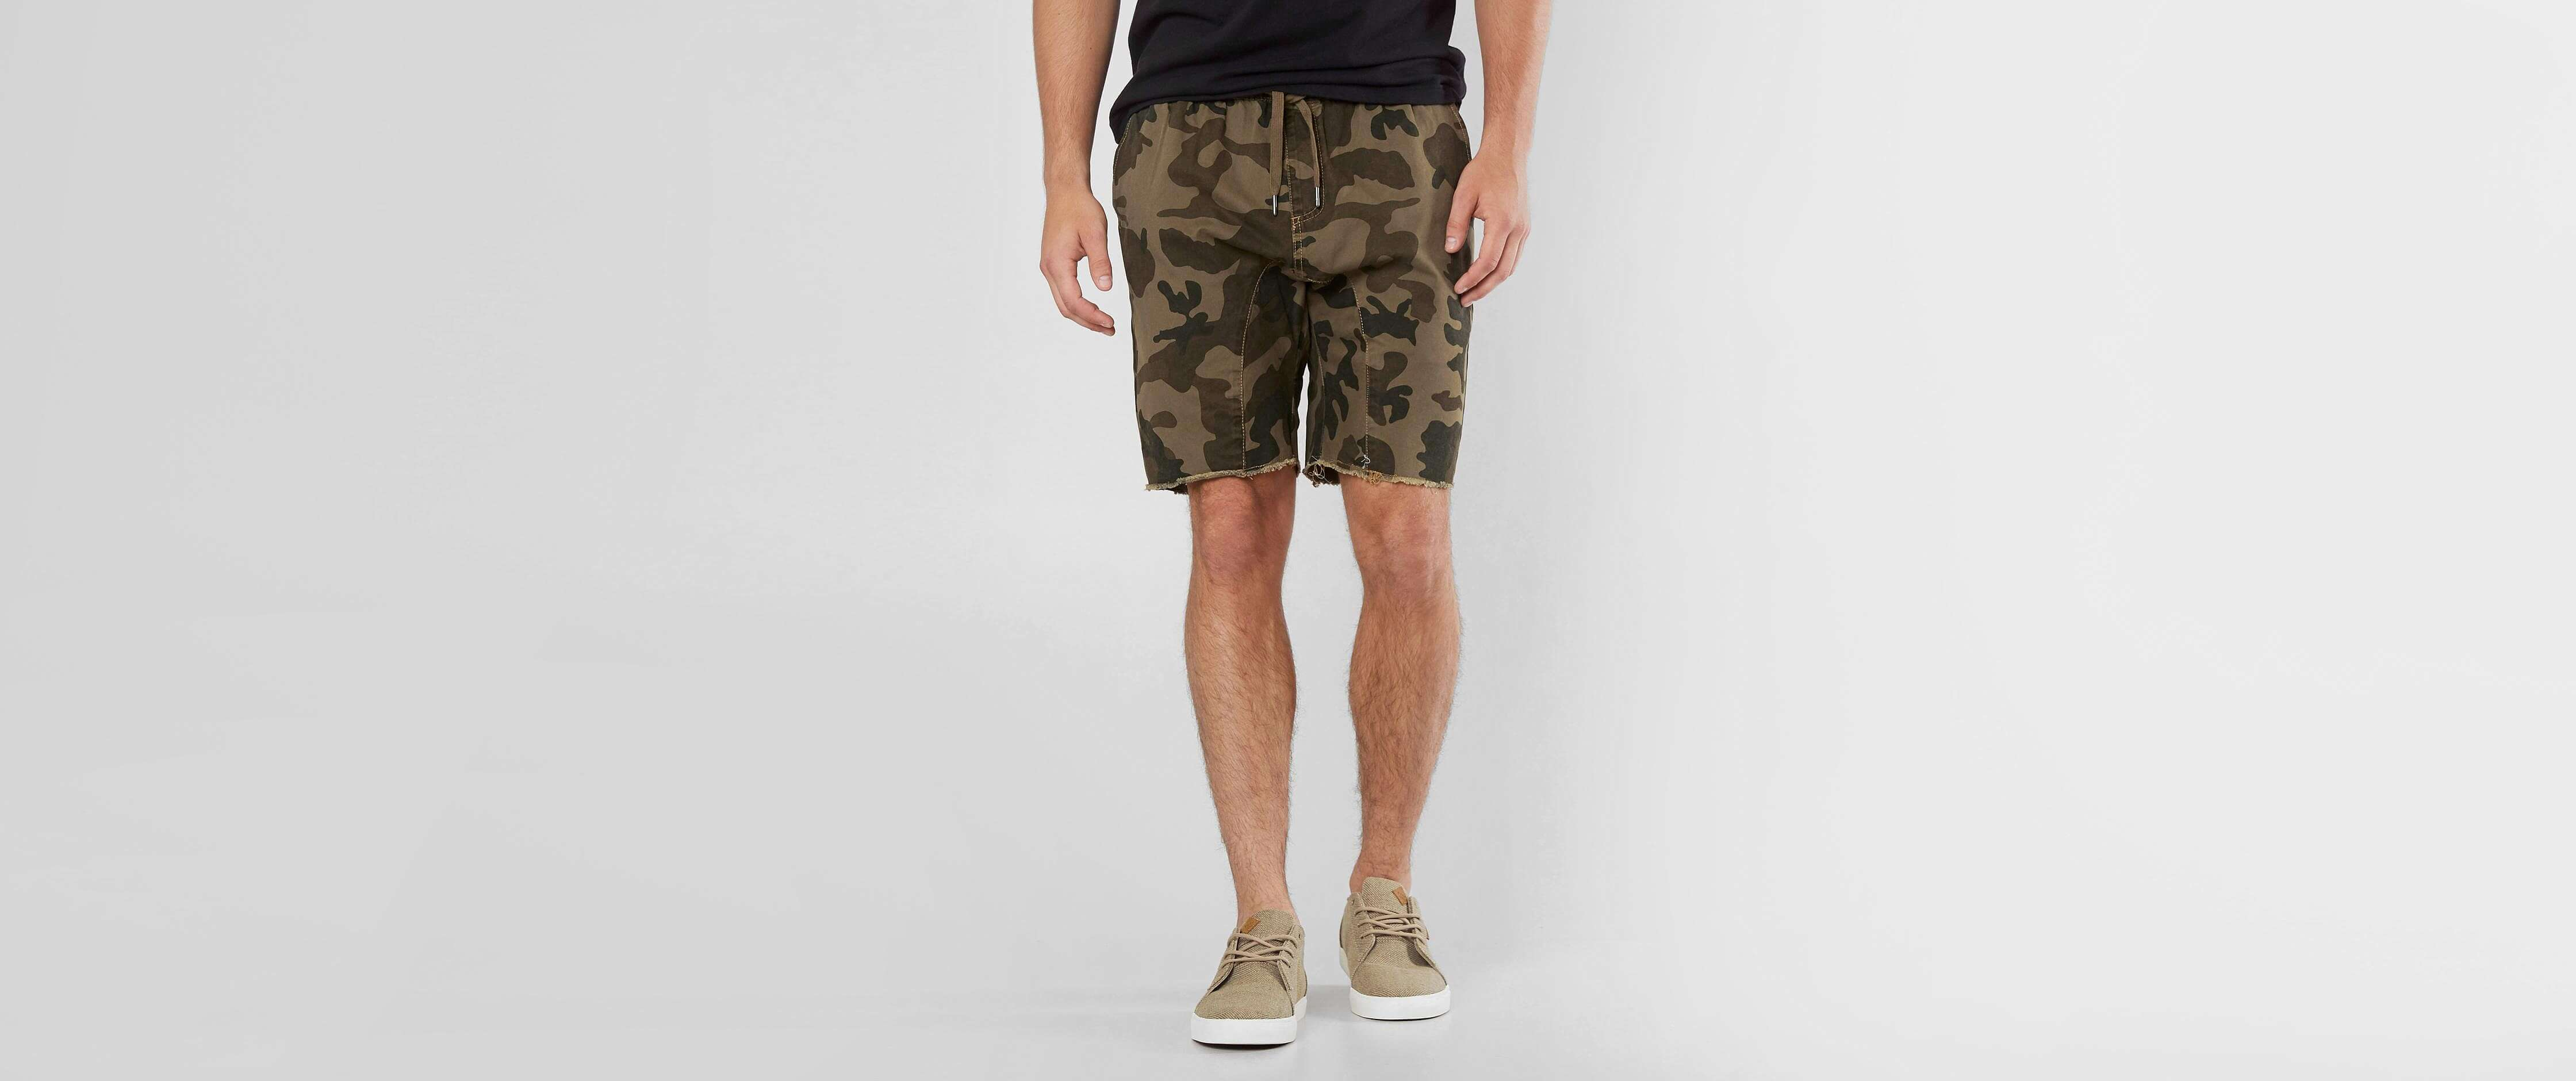 New Grindhouse Camo Short